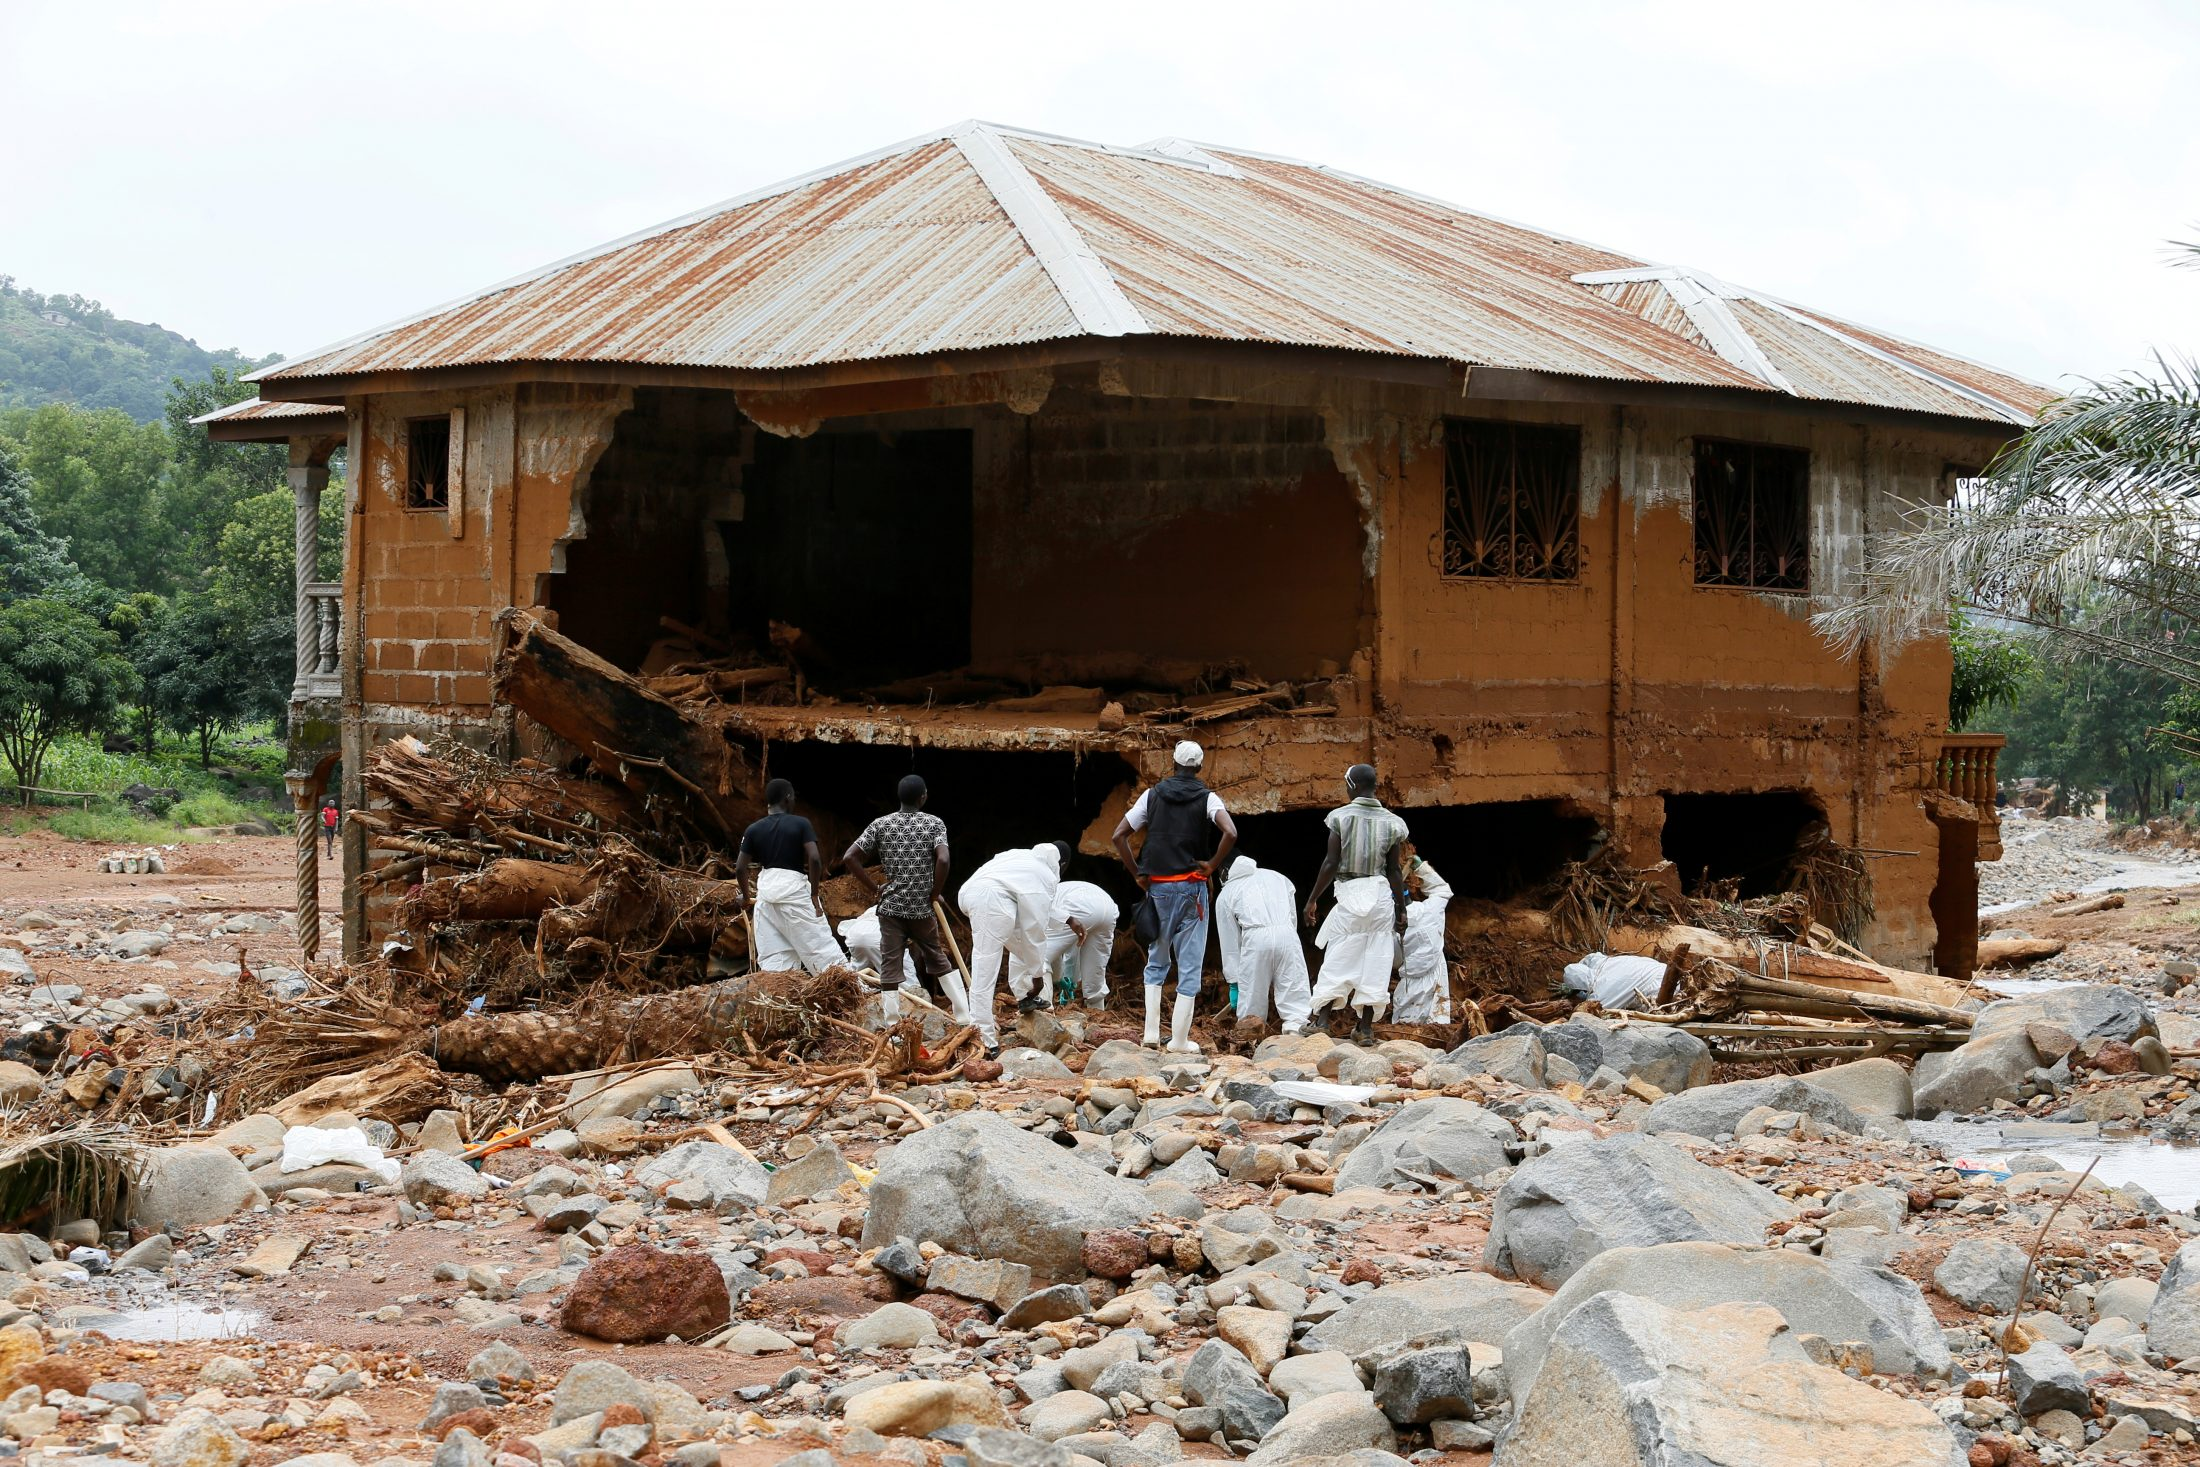 Rescue workers are seen last week searching through rubbles around a house for bodies at Pentagon, in Freetown, Sierra Leone. Photo by Afolabi Sotunde/Reuters